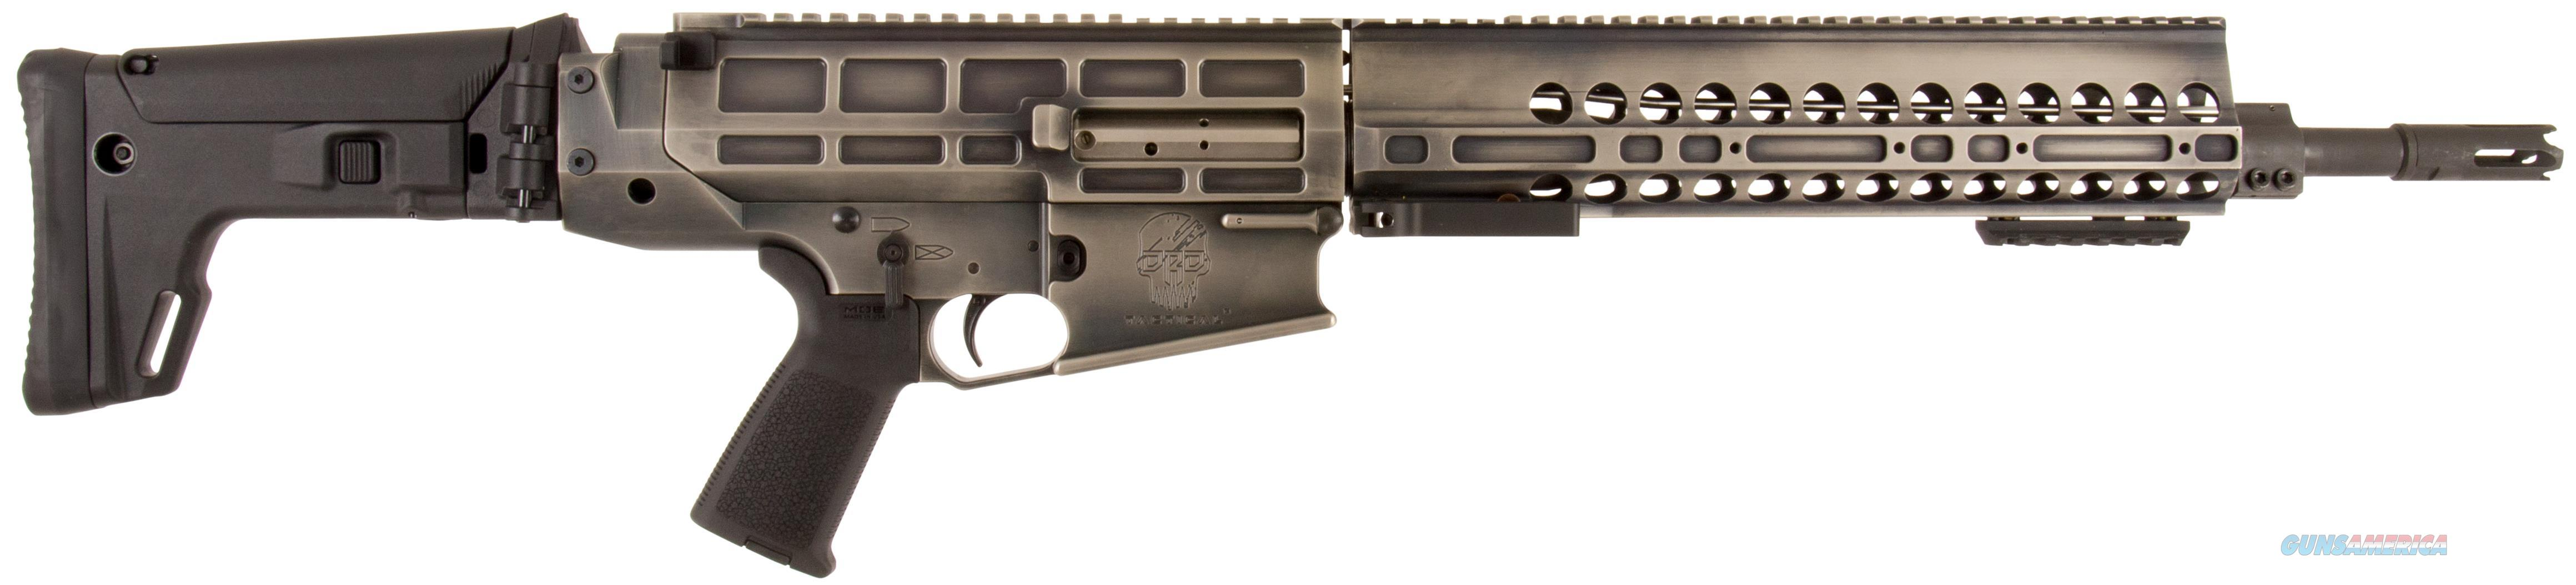 DRD TACTICAL DRDP762BW16 PARATUS GEN-2 SEMI-AUTOMATIC 308 WINCHESTER/7.62 NATO 1 DRDP762BW16  Guns > Rifles > AR-15 Rifles - Small Manufacturers > Complete Rifle